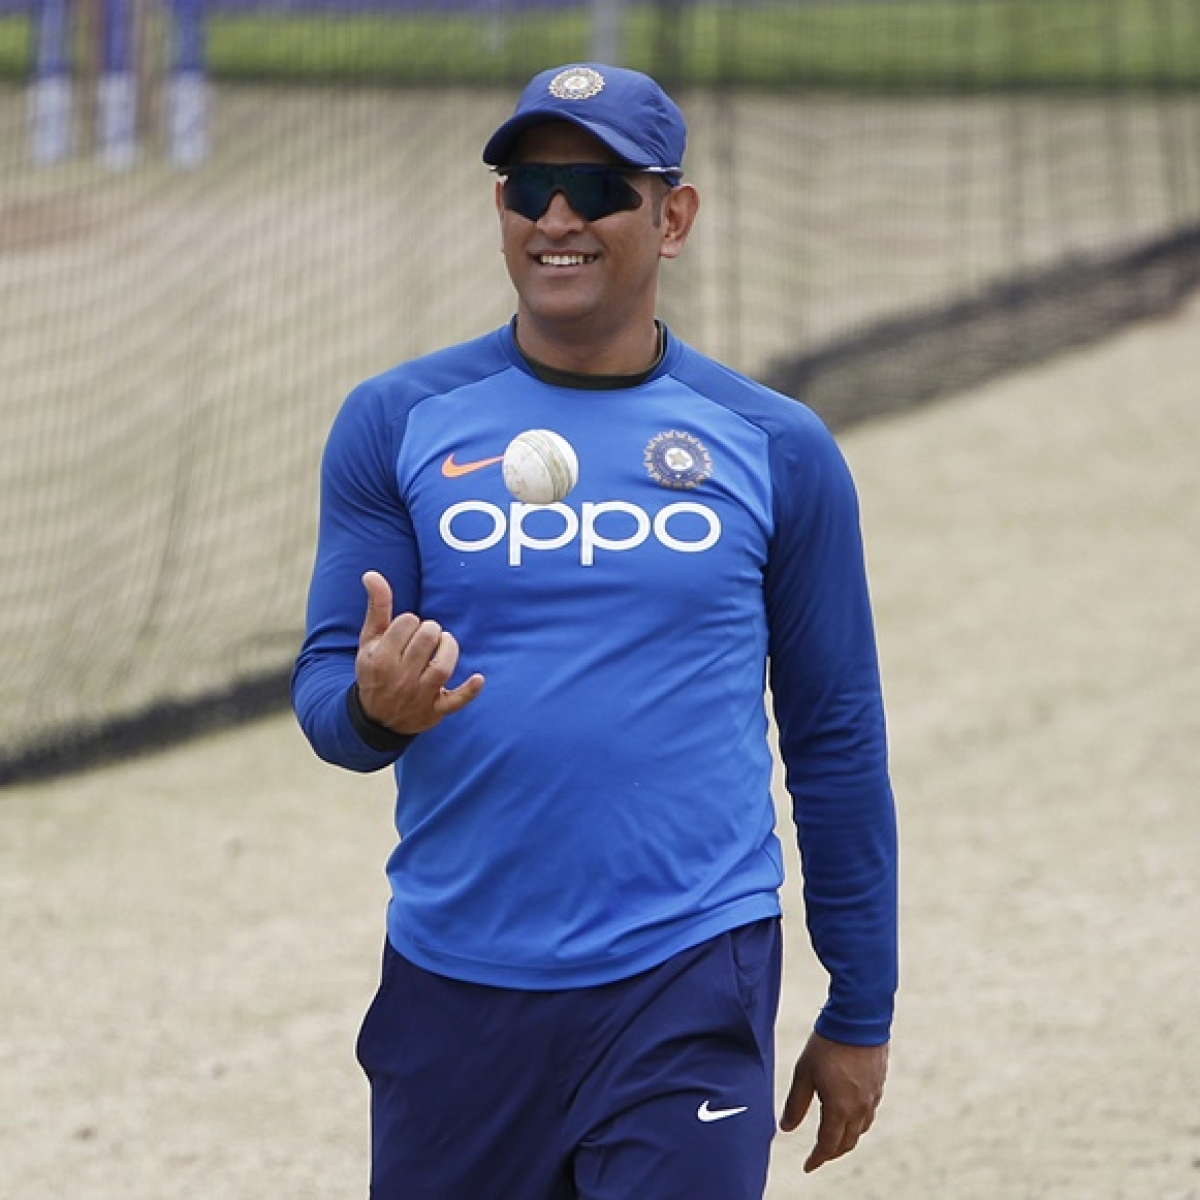 'MS Dhoni should have retired after 2019 World Cup', says Shoaib Akhtar